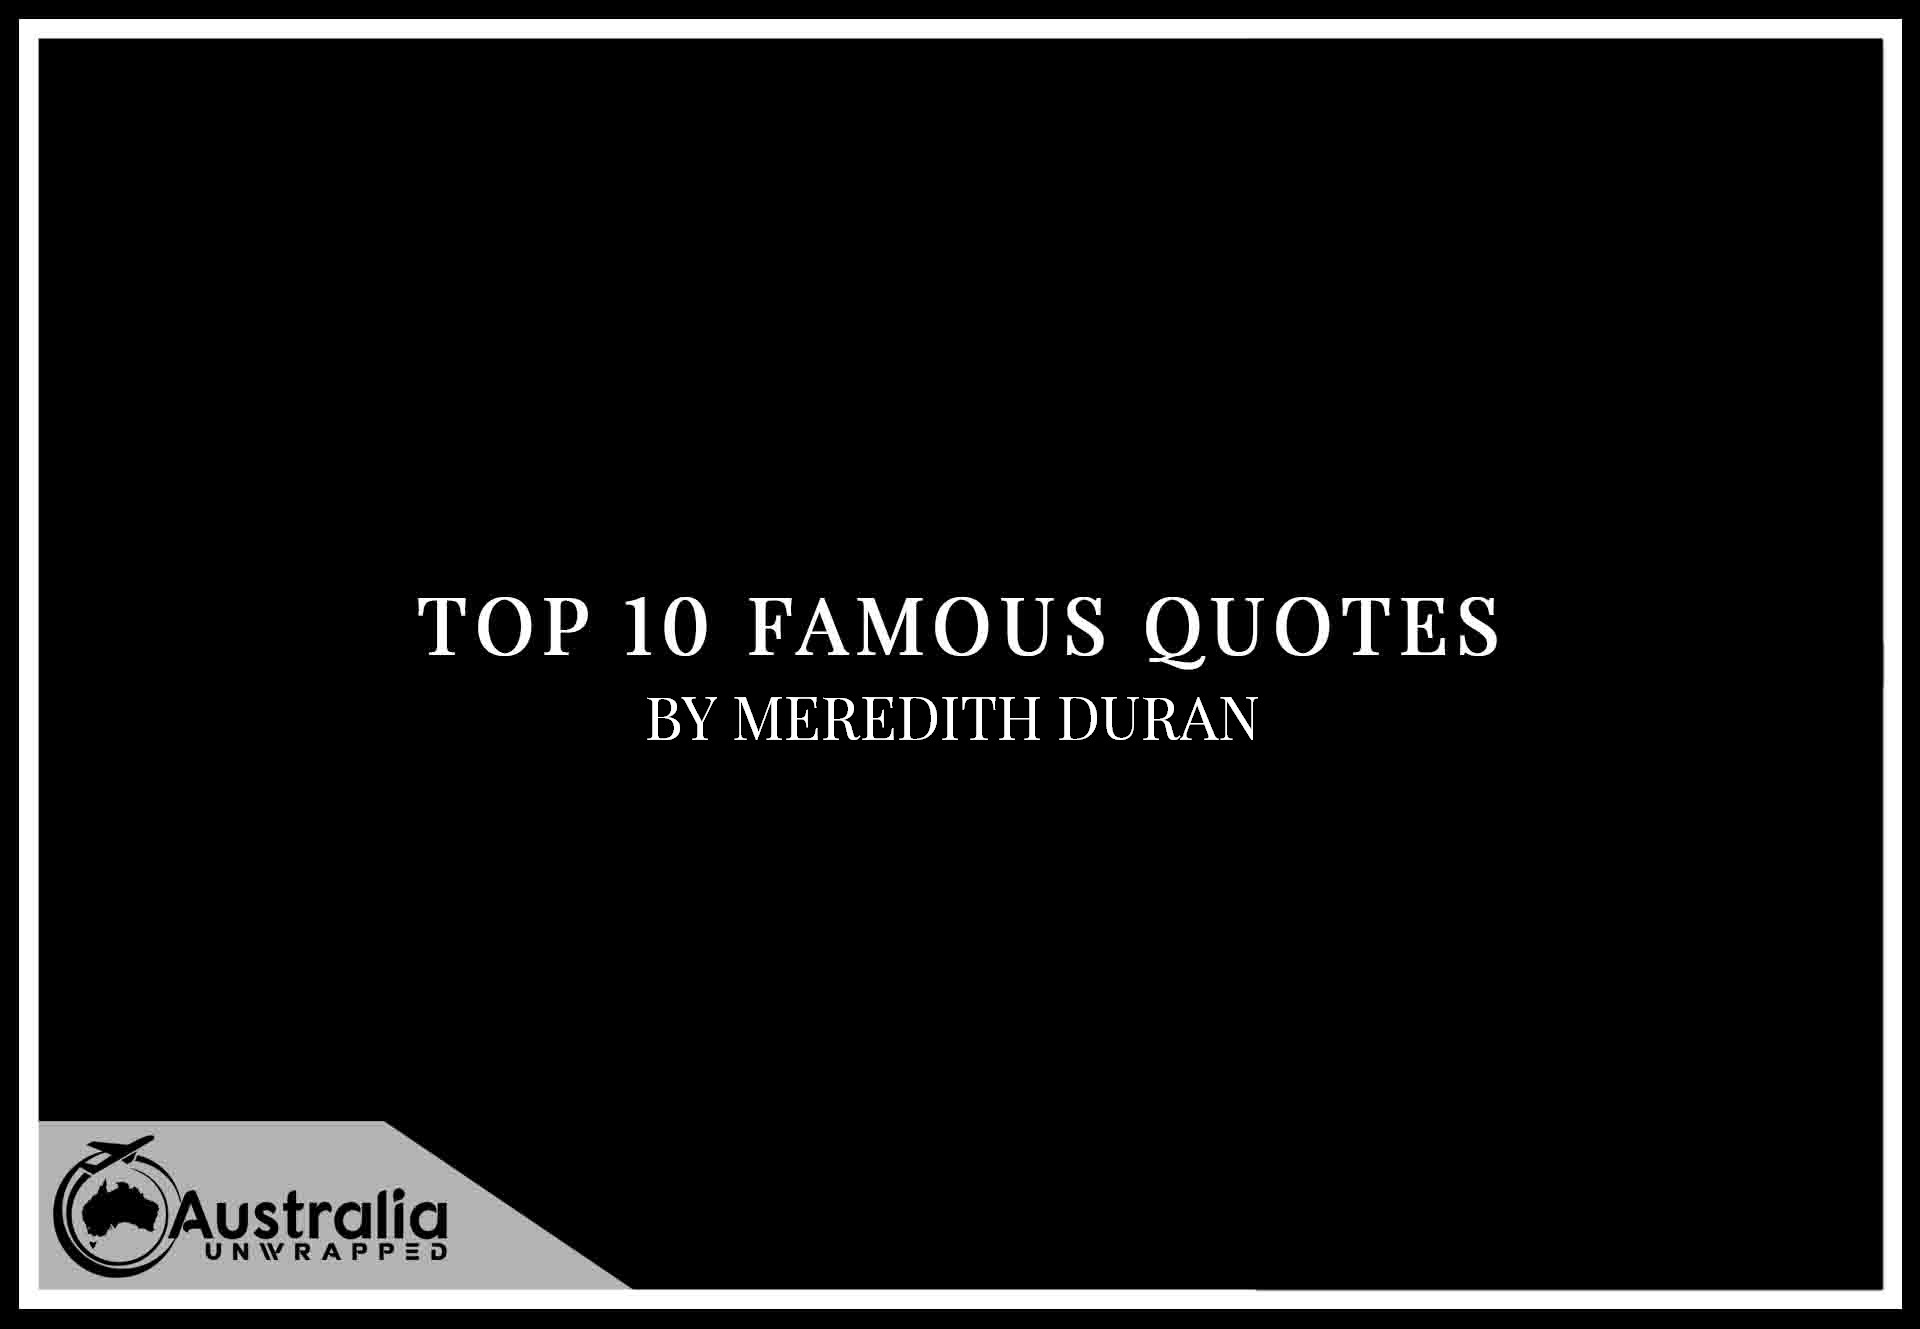 Top 10 Famous Quotes by Author Meredith Duran